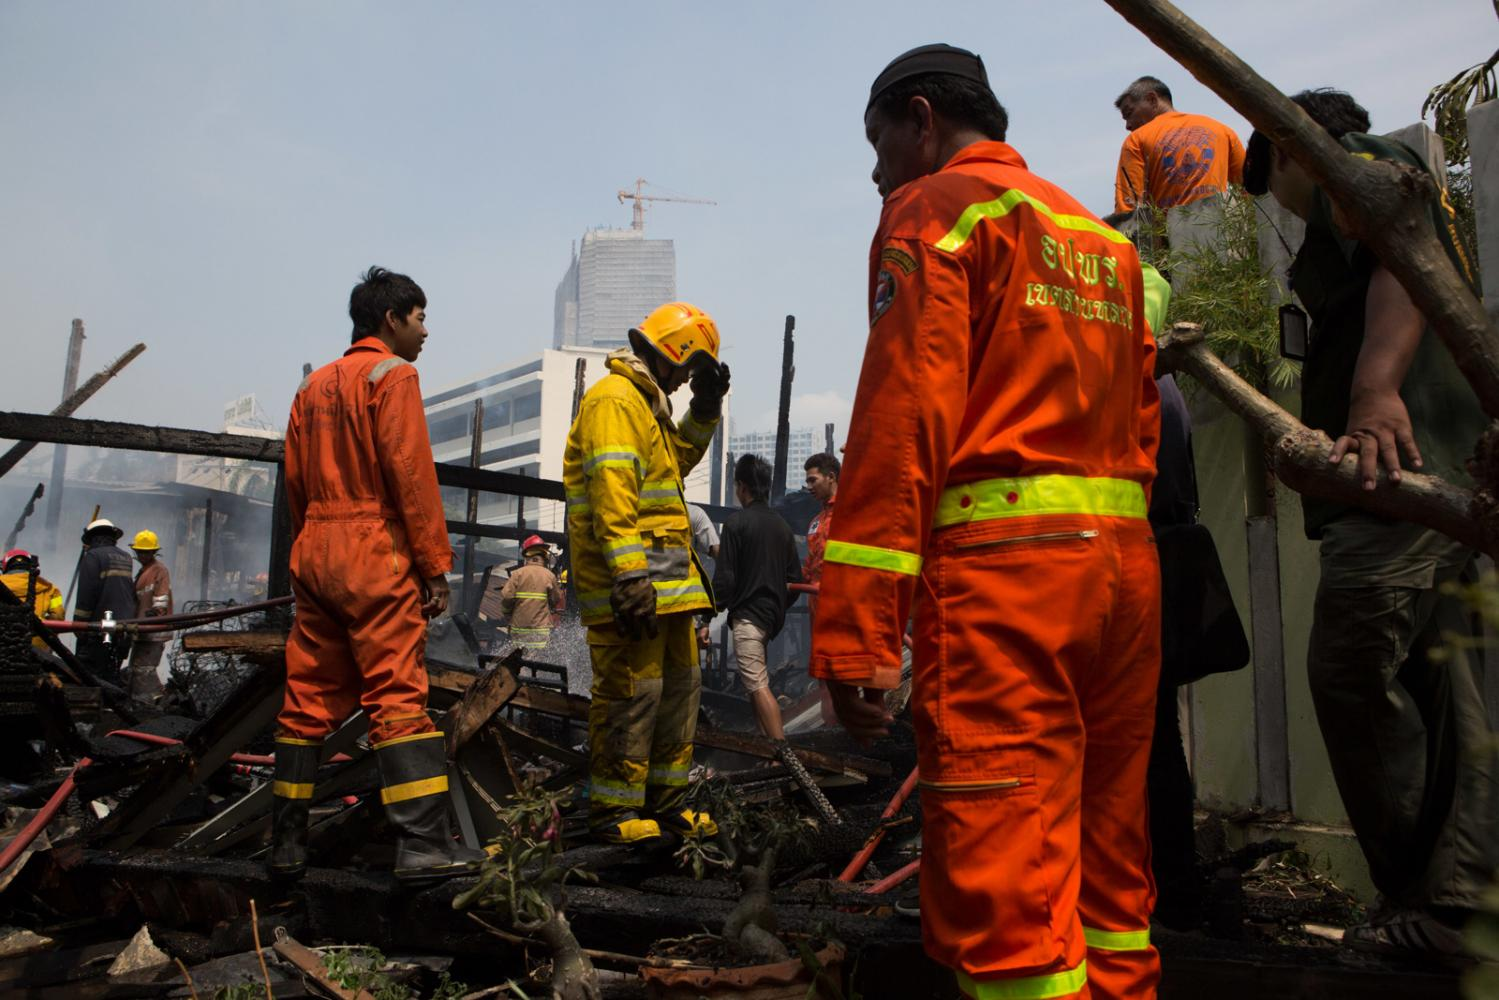 Fireighters in Bangkok, Thailand